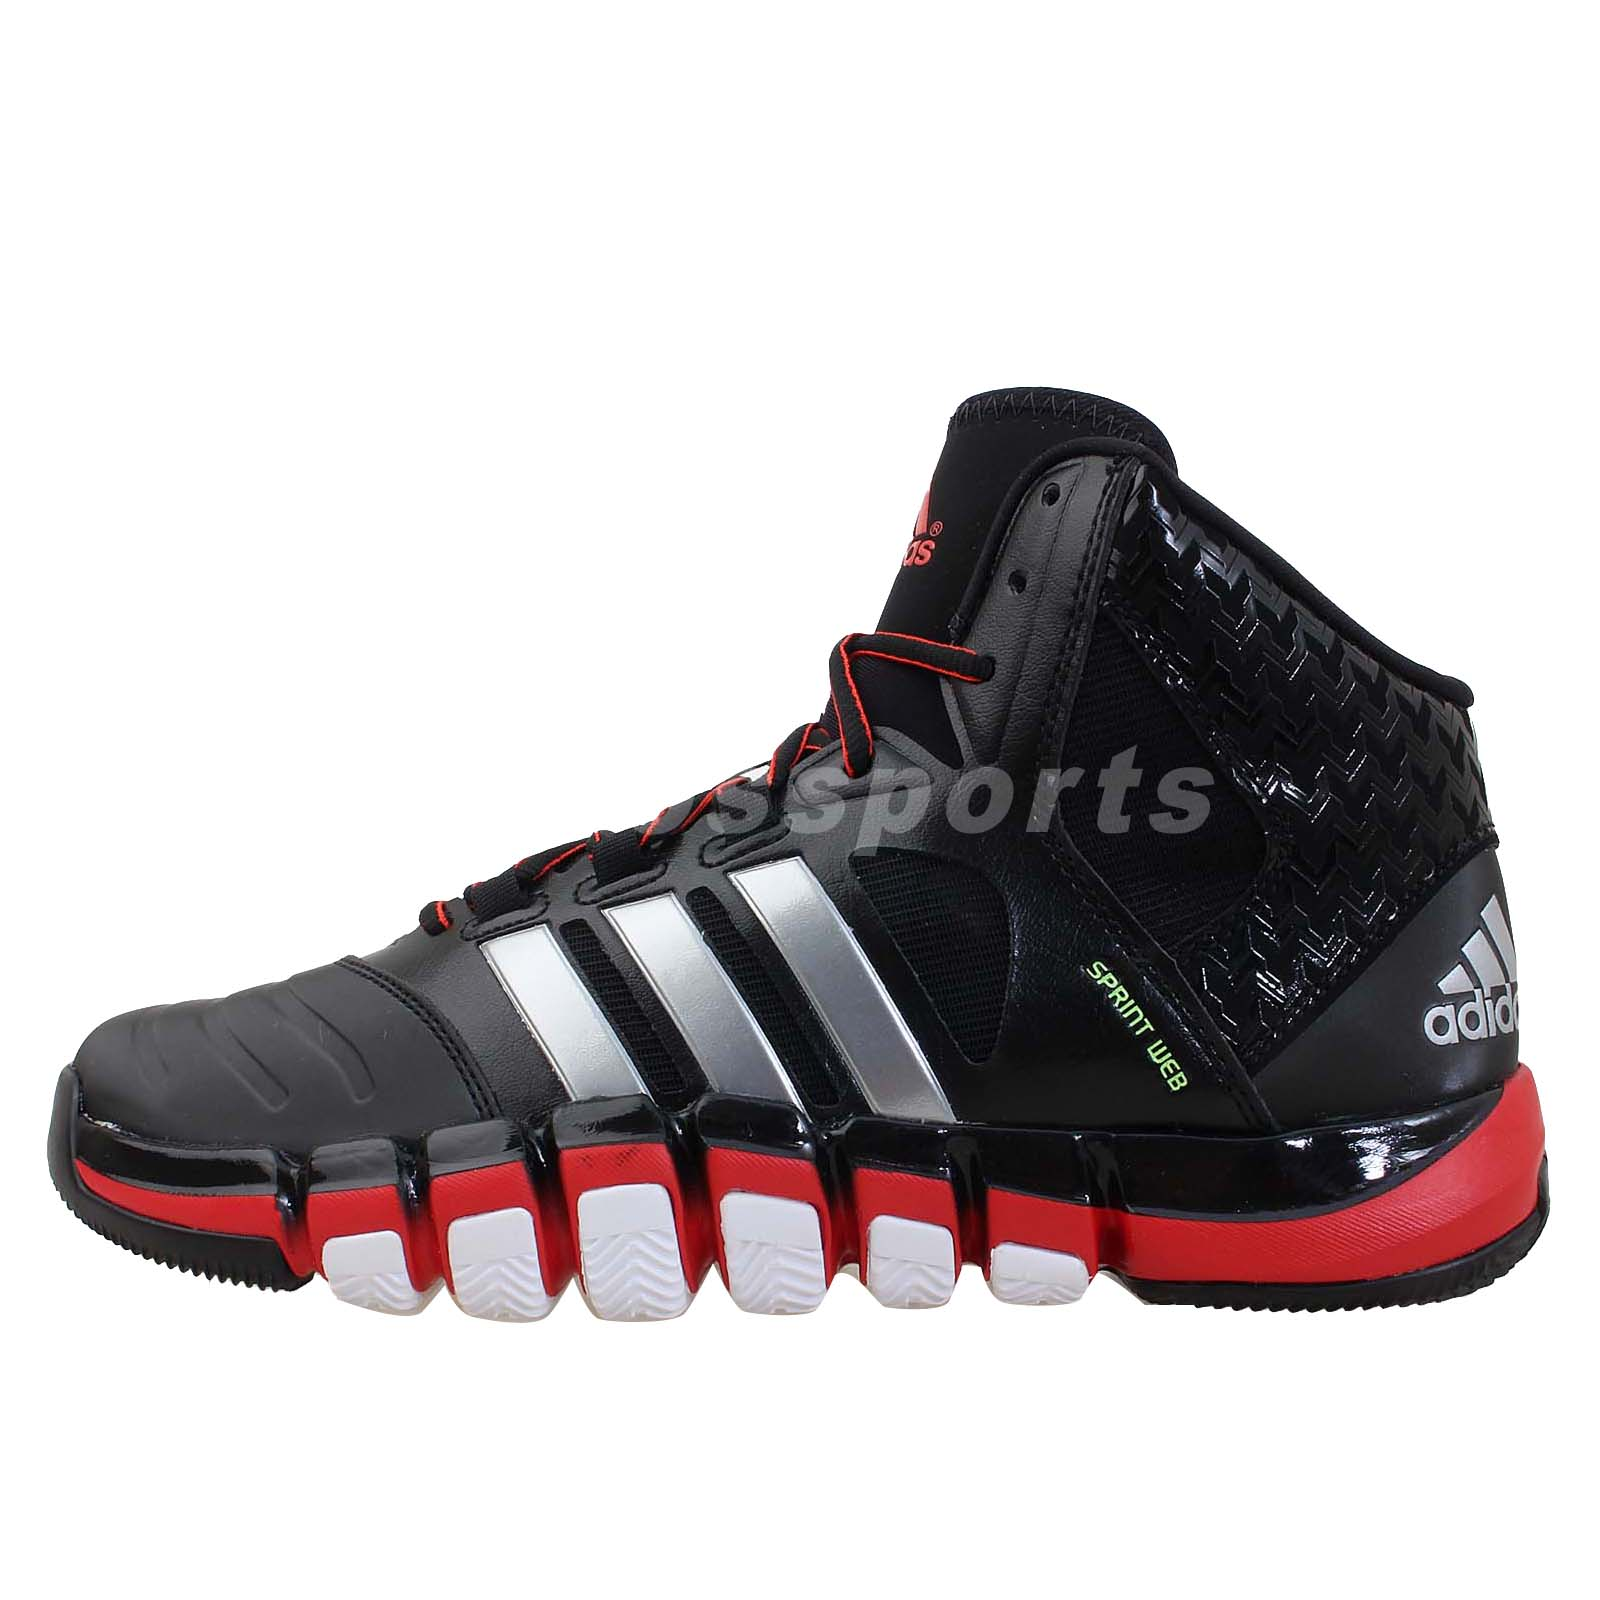 Shoes For Men 2013 Adidas Adidas Adipure ...